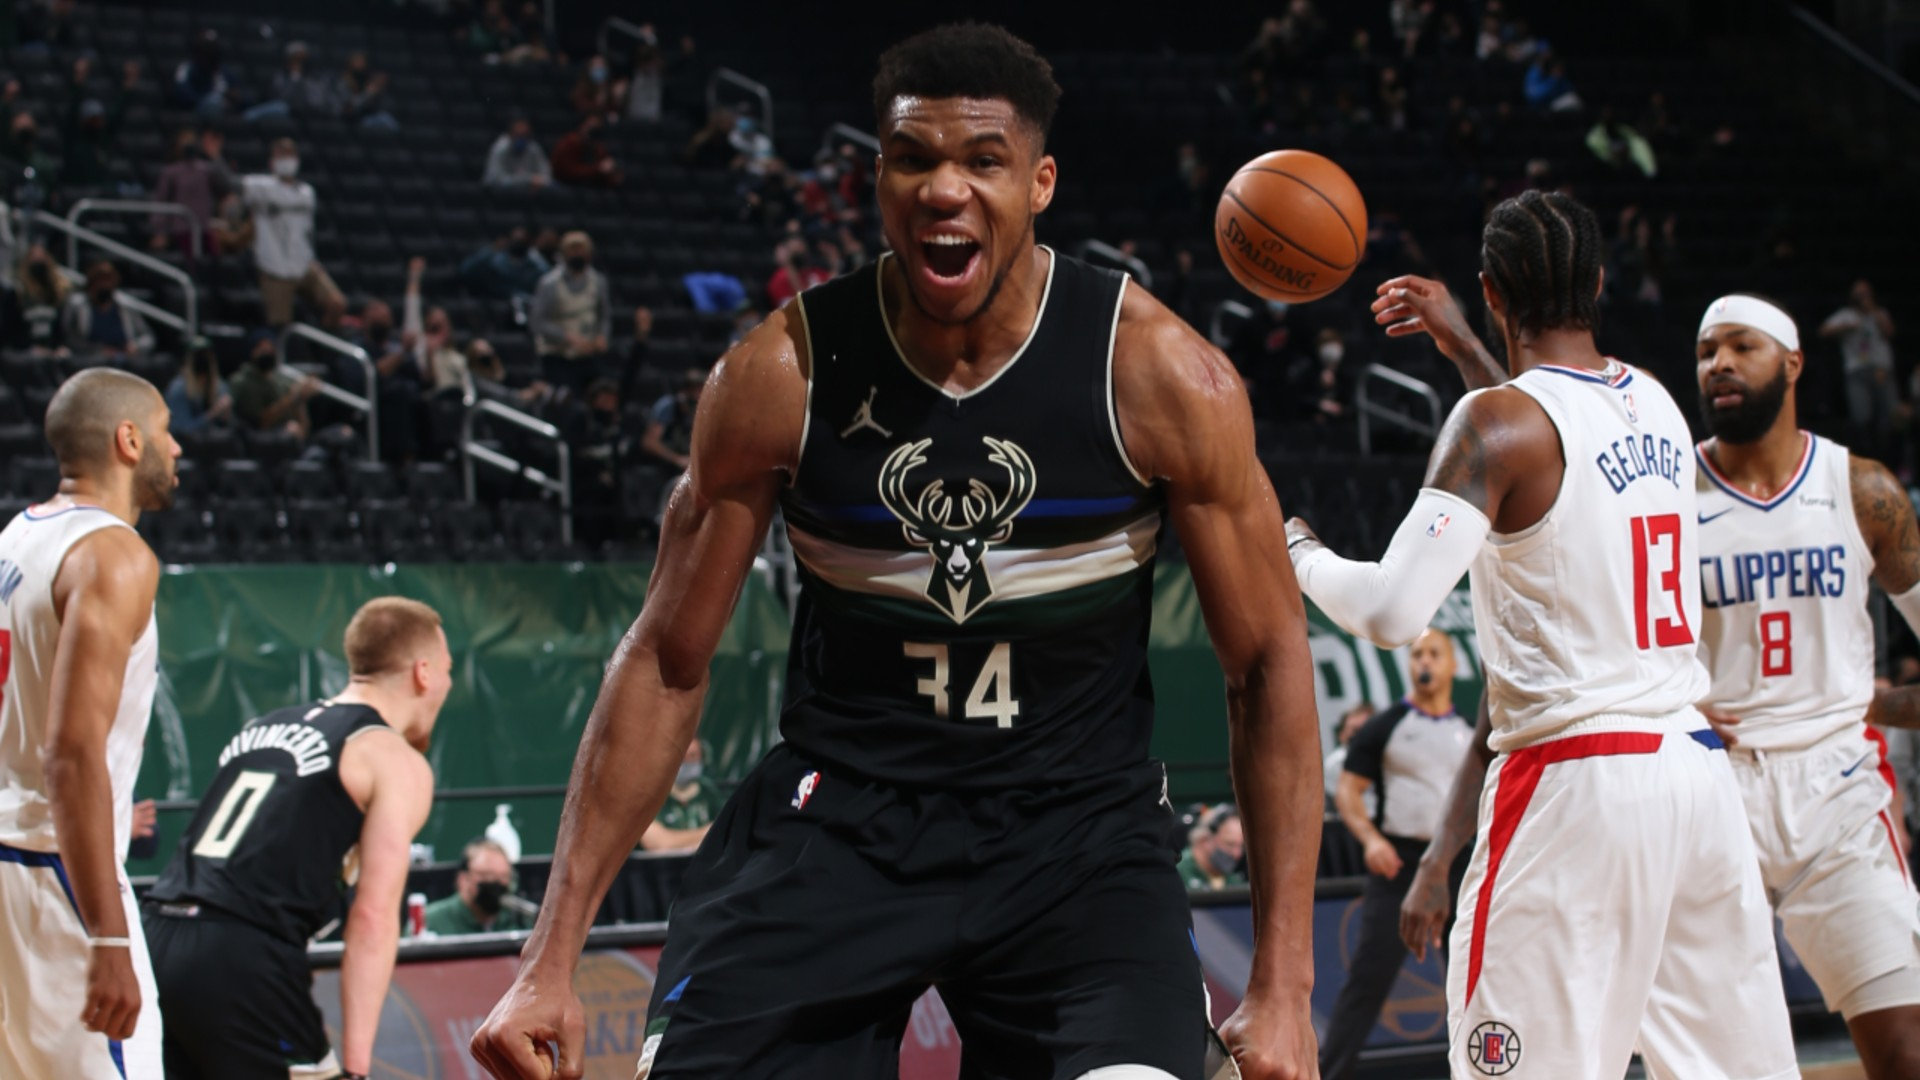 Bucks star Giannis relishes blockbuster battles after taming Kawhi's Clippers: Feels like greatness